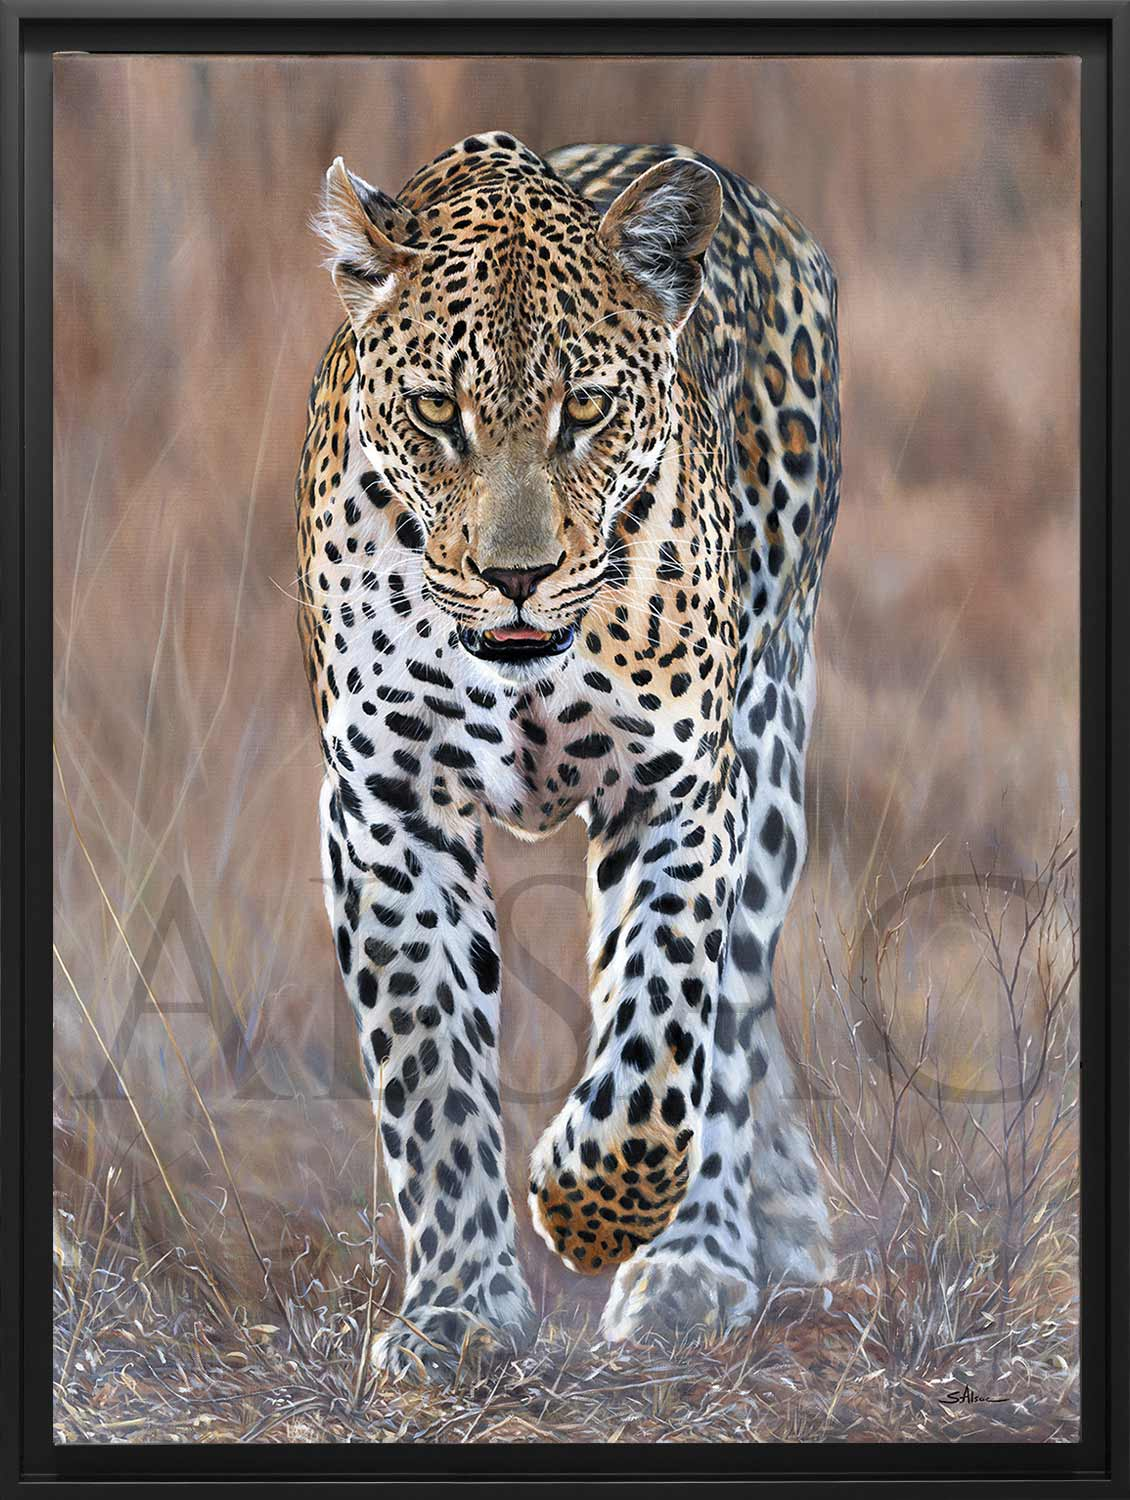 The Chaser Realistic Painting Of A Leopard By Stephan Alsac